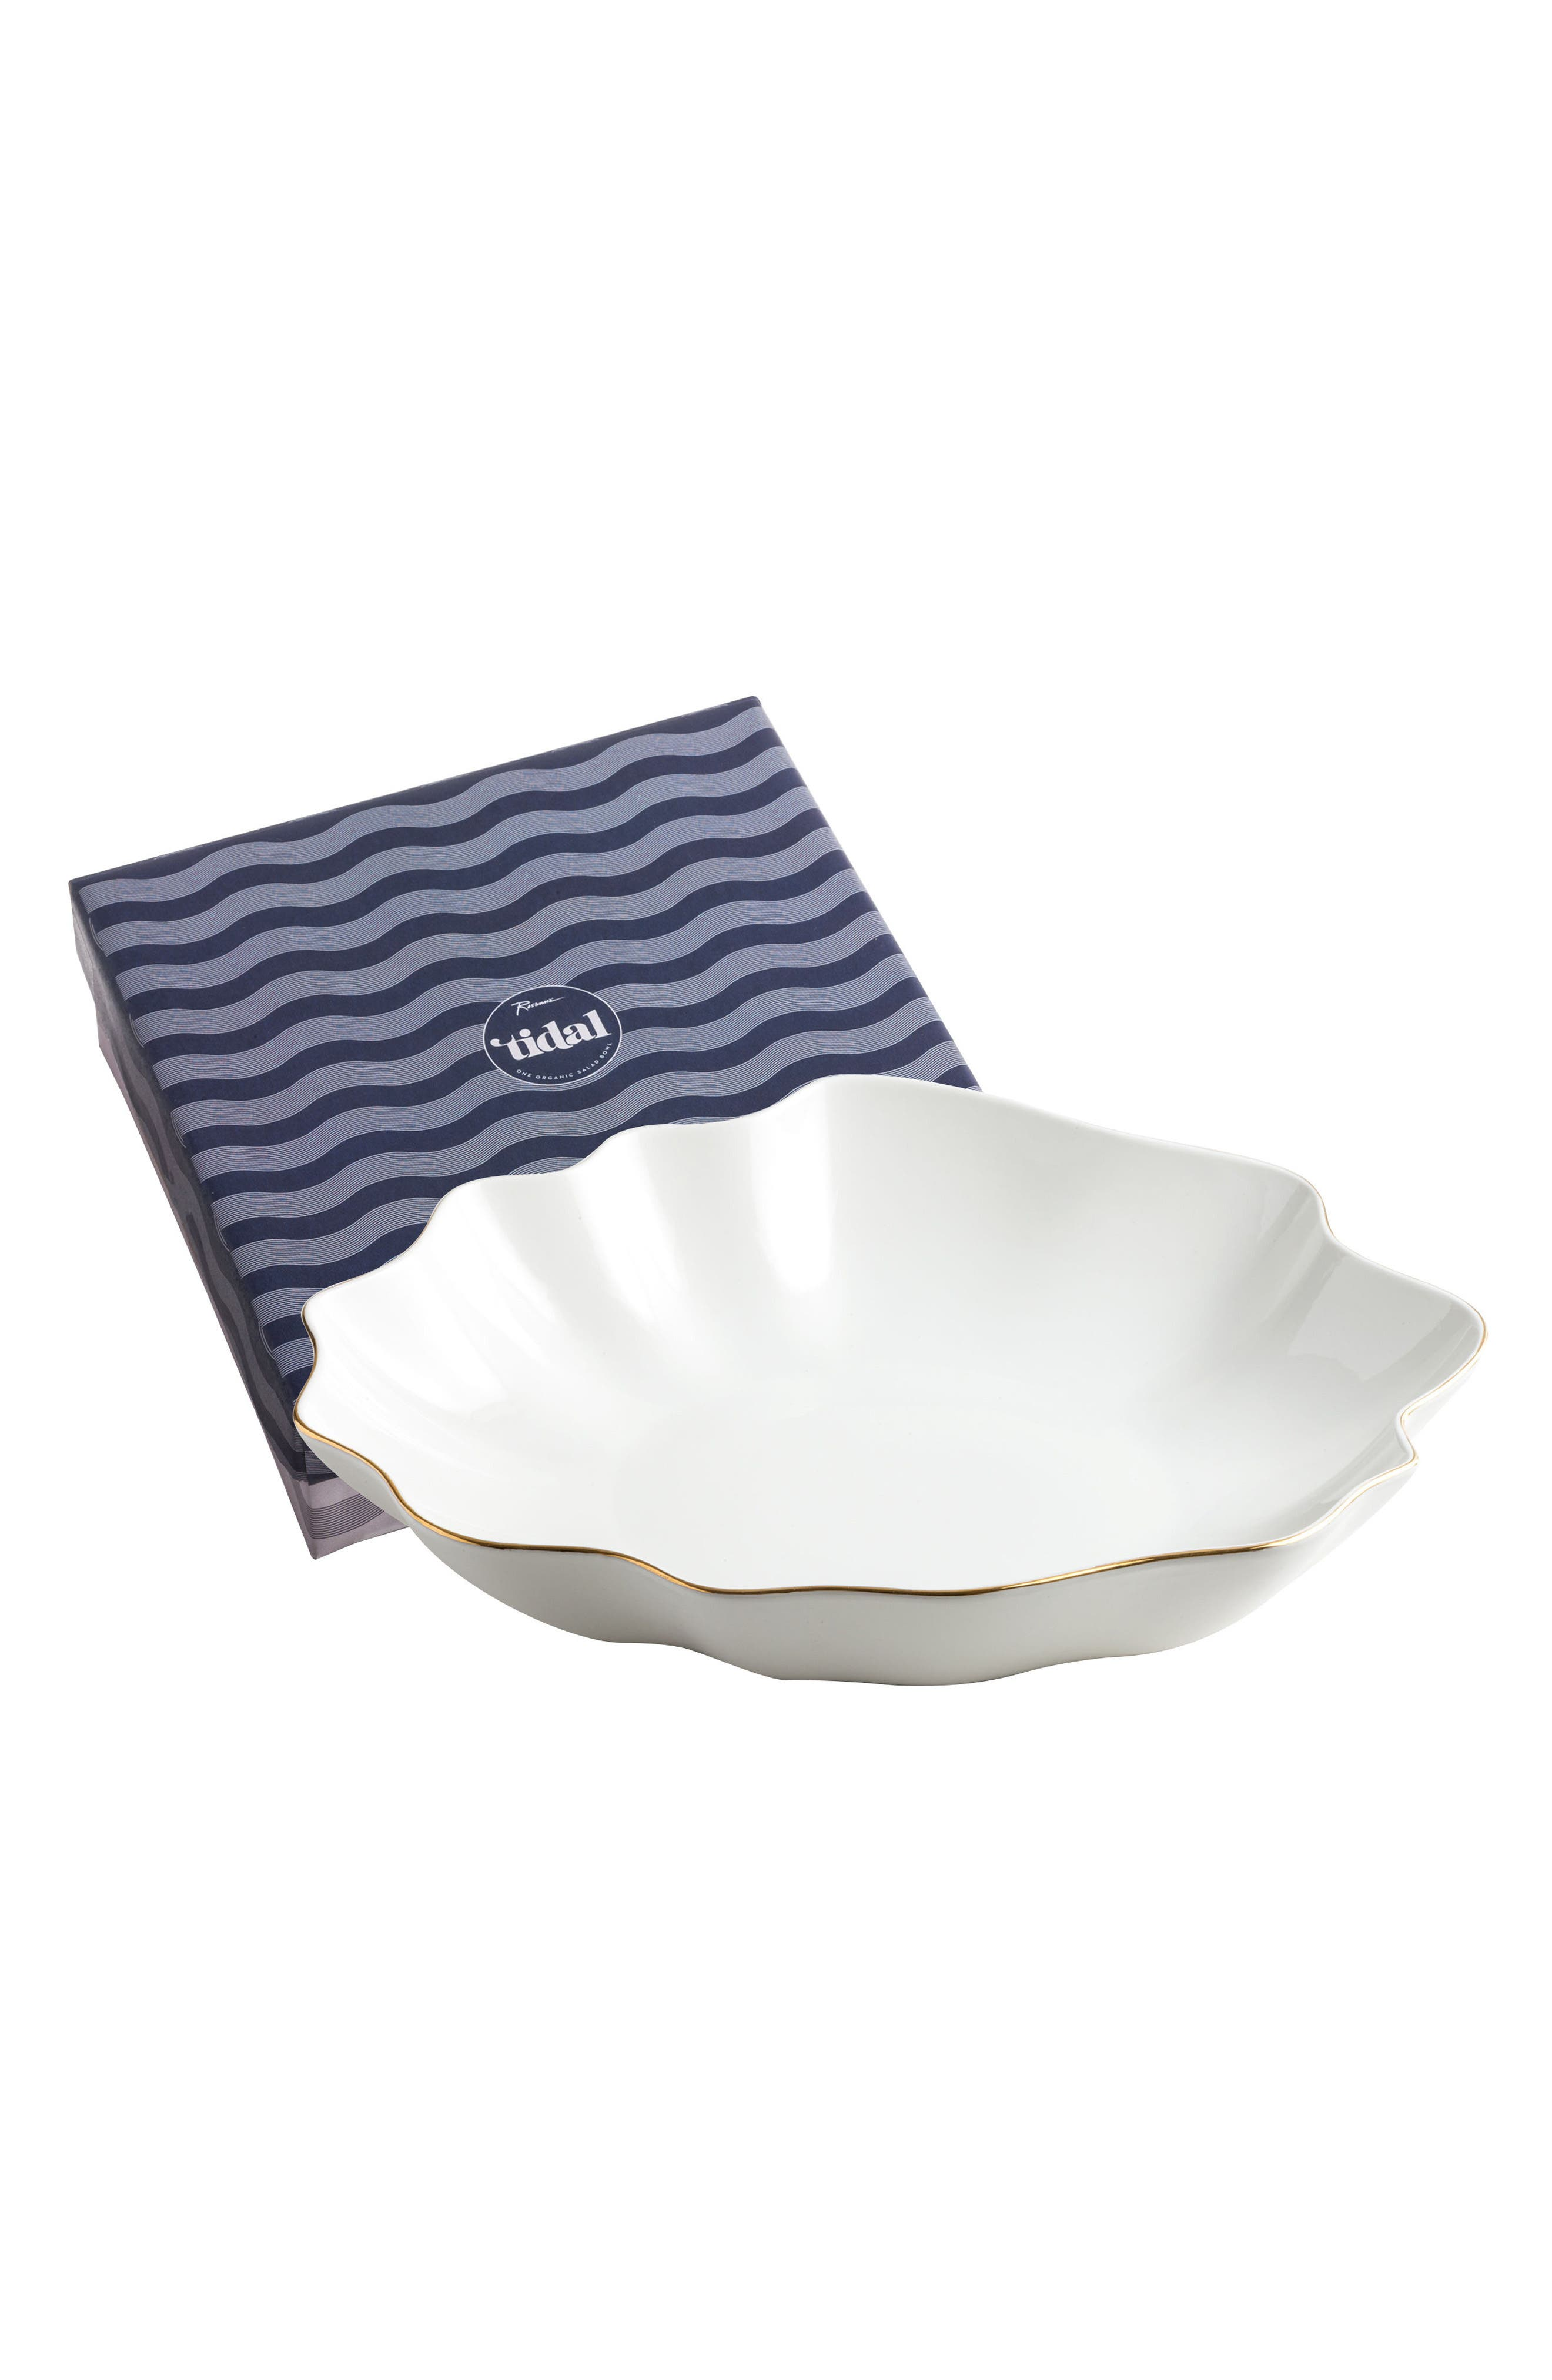 Main Image - Rosanna Salad Serving Bowl